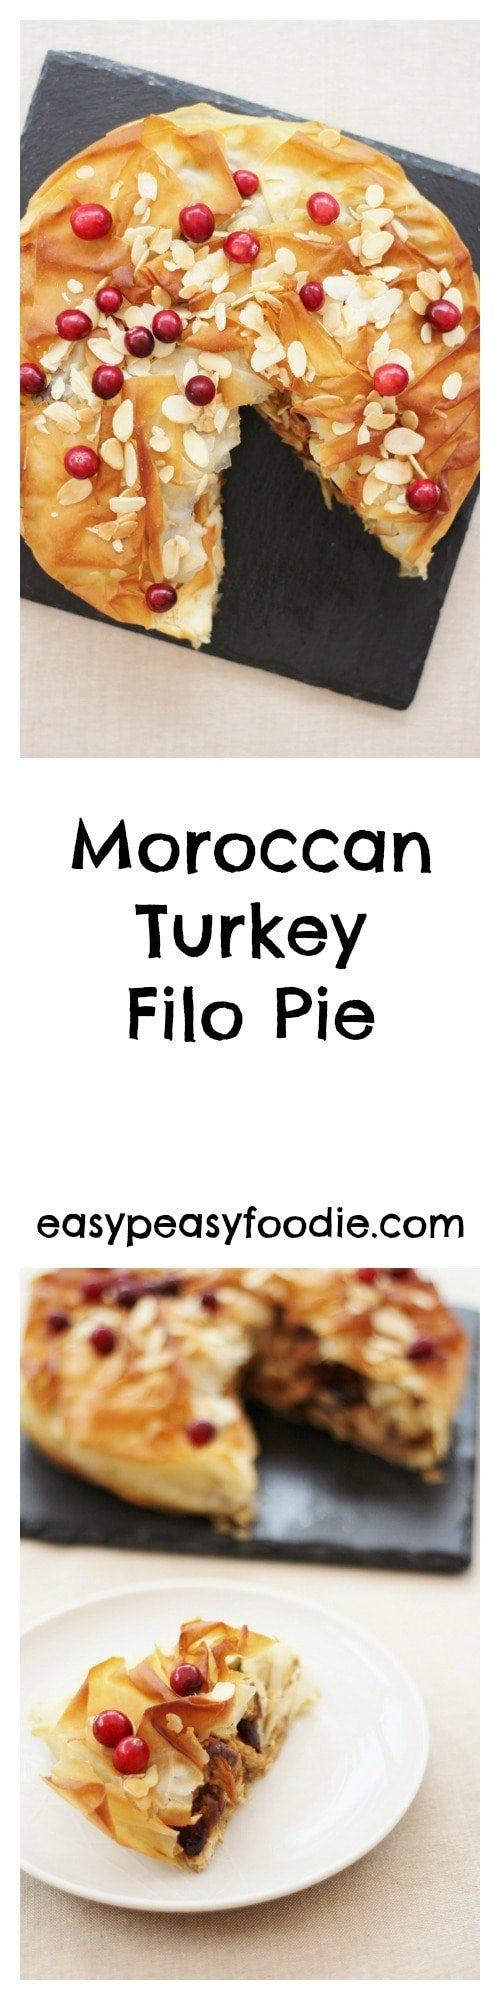 Moroccan Turkey Filo Pie - pinnable image for Pinterest